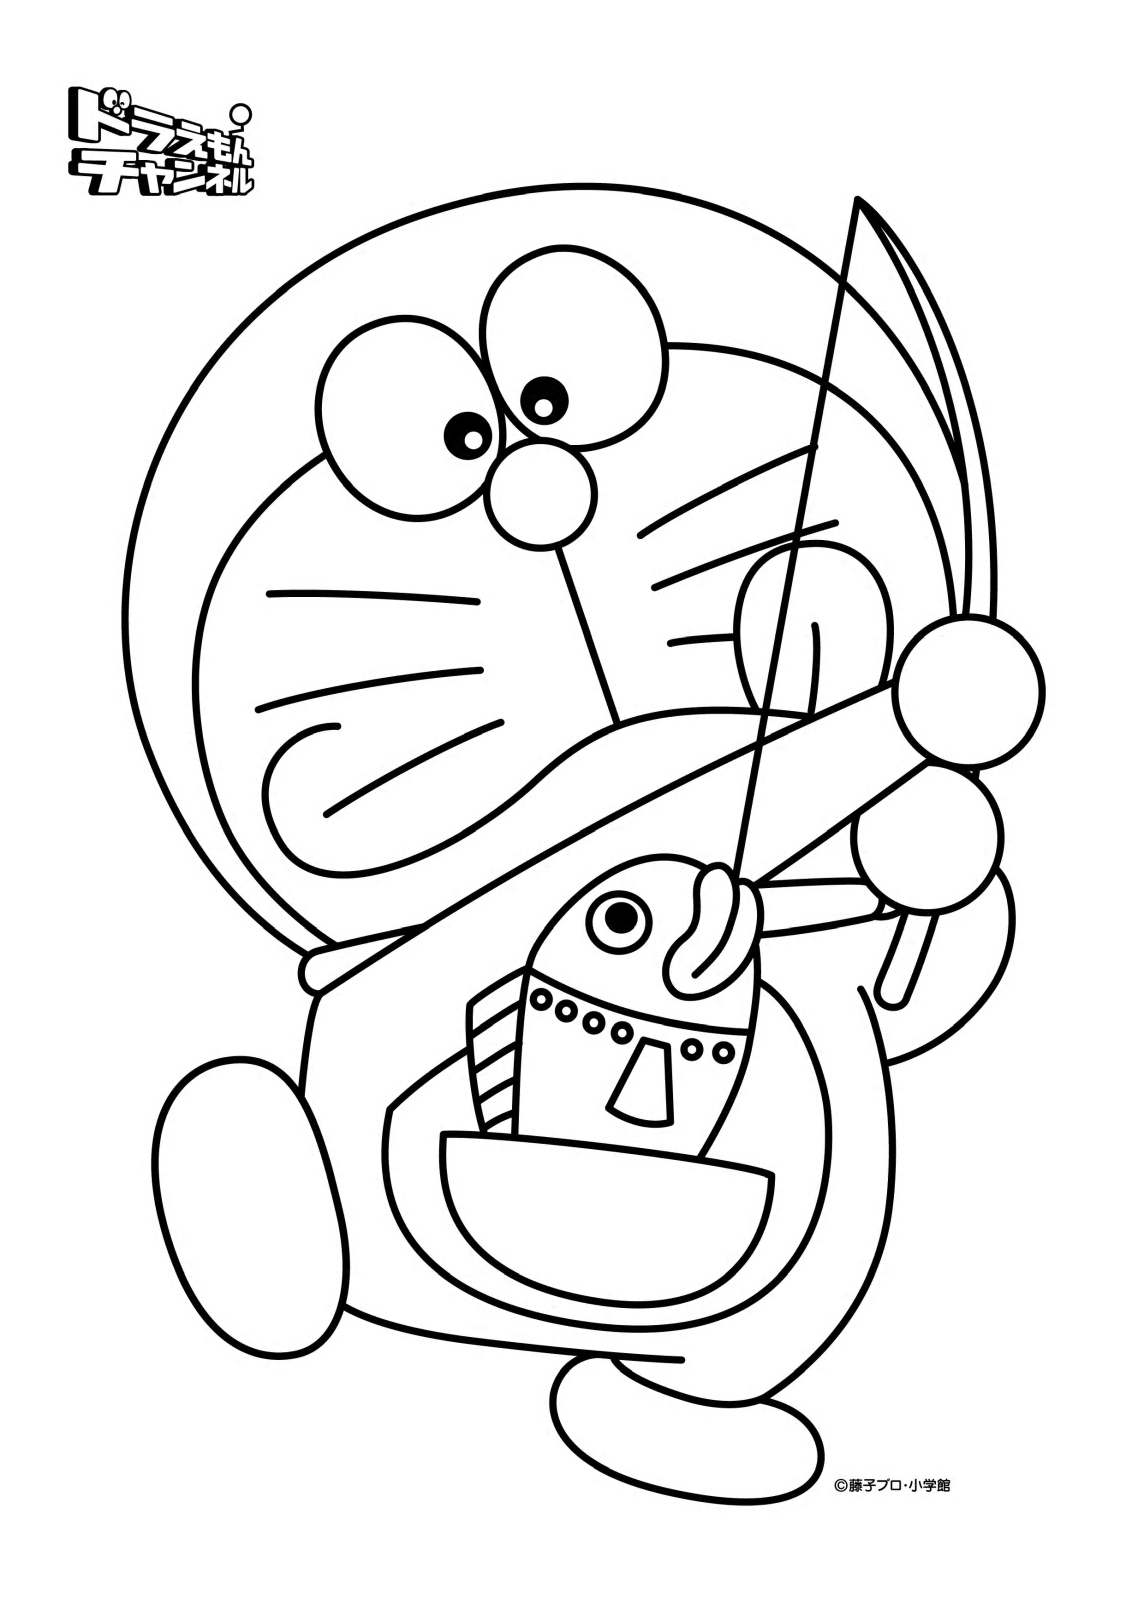 coloring book doraemon - Coloring Or Colouring